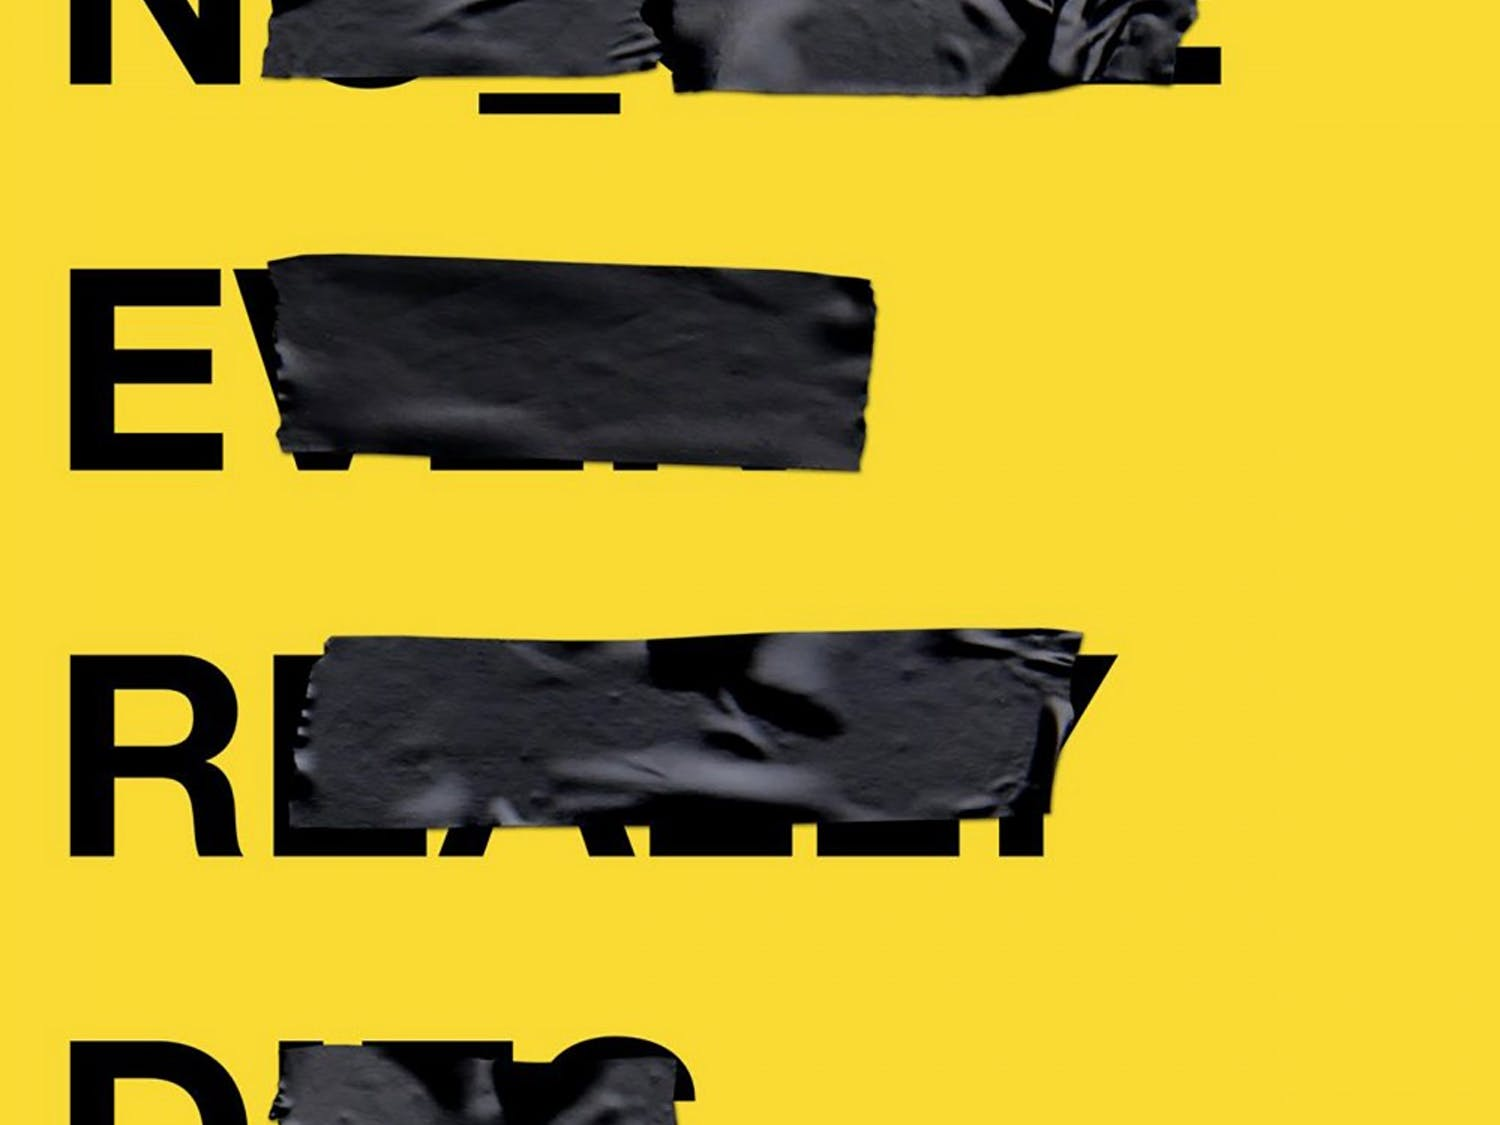 """N.E.R.D. is back. The popular rock/R&B trio, led by Pharrell, dropped new single """"Lemon"""" on Nov. 1. The track, which features a verse from Rihanna, is just one of many new singles to keep an eye on this month."""